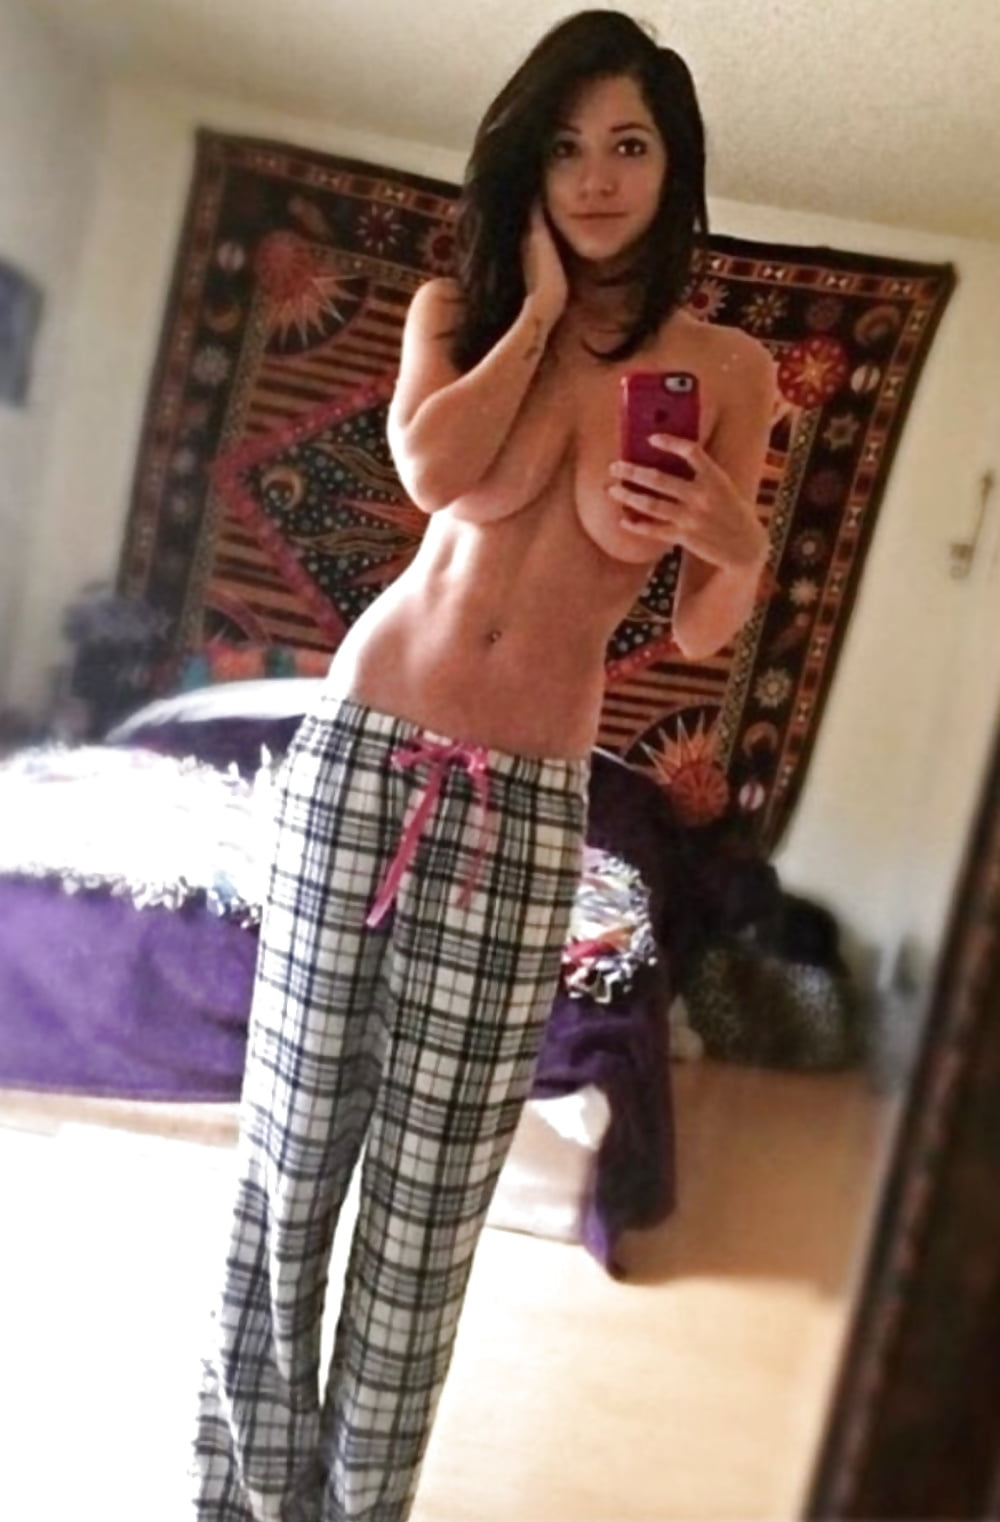 removing-her-pajamas-shows-her-tits-naked-female-teen-mexican